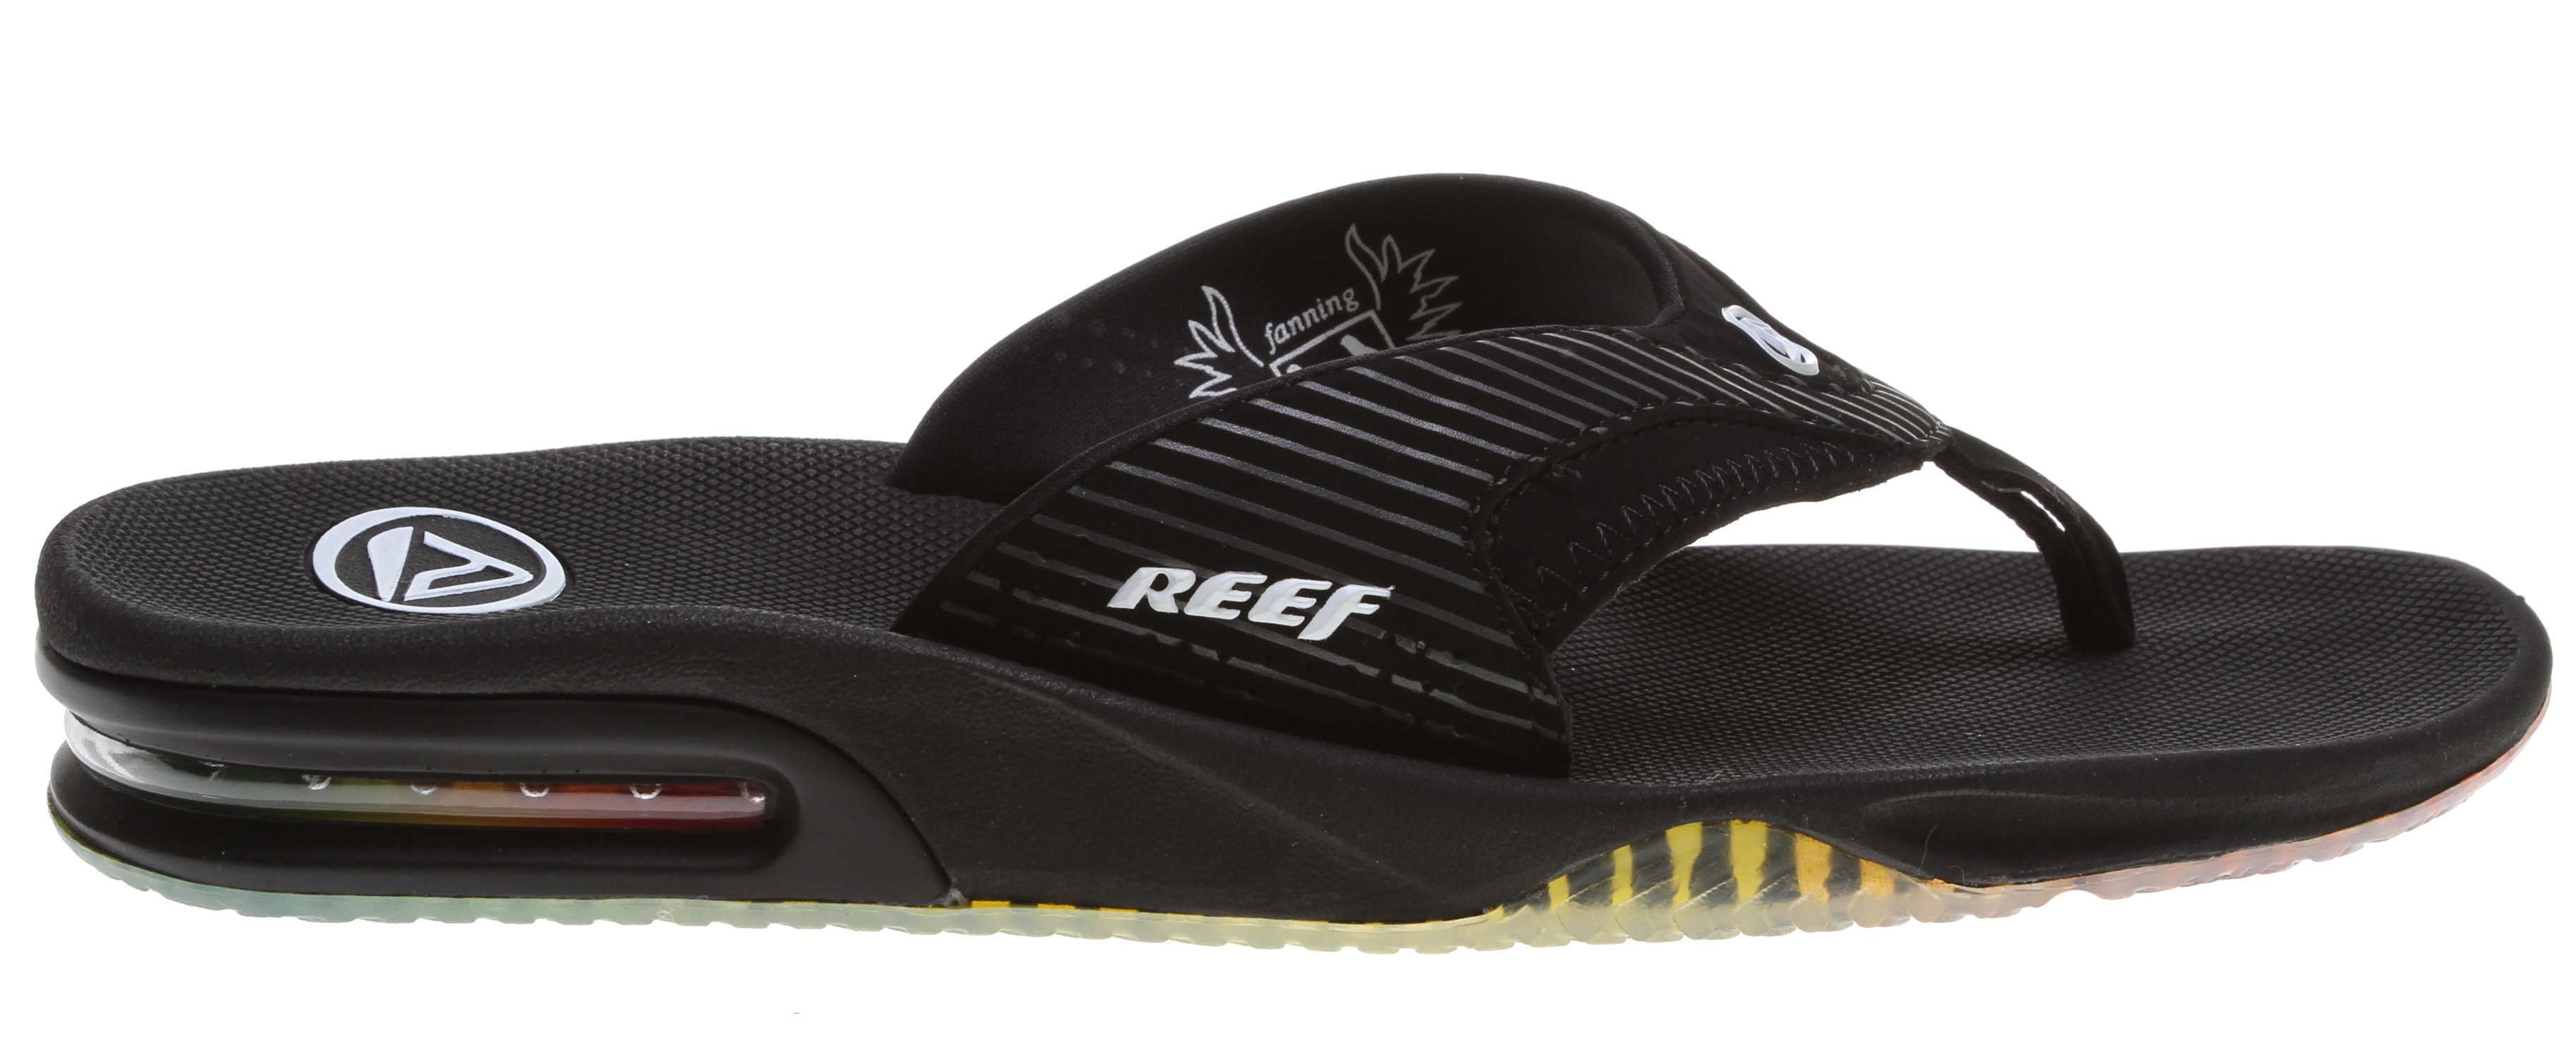 "Surf Key Features of the Reef Fanning Sandals: Comfortable, water friendly synthetic nubuck upper contoured compression molded eva footbed with anatomical arch support Full 360° heel airbag enclosed in soft polyurethane Church key to open your ""soda"" bottle Reef icon herringbone rubber outsole - $34.95"